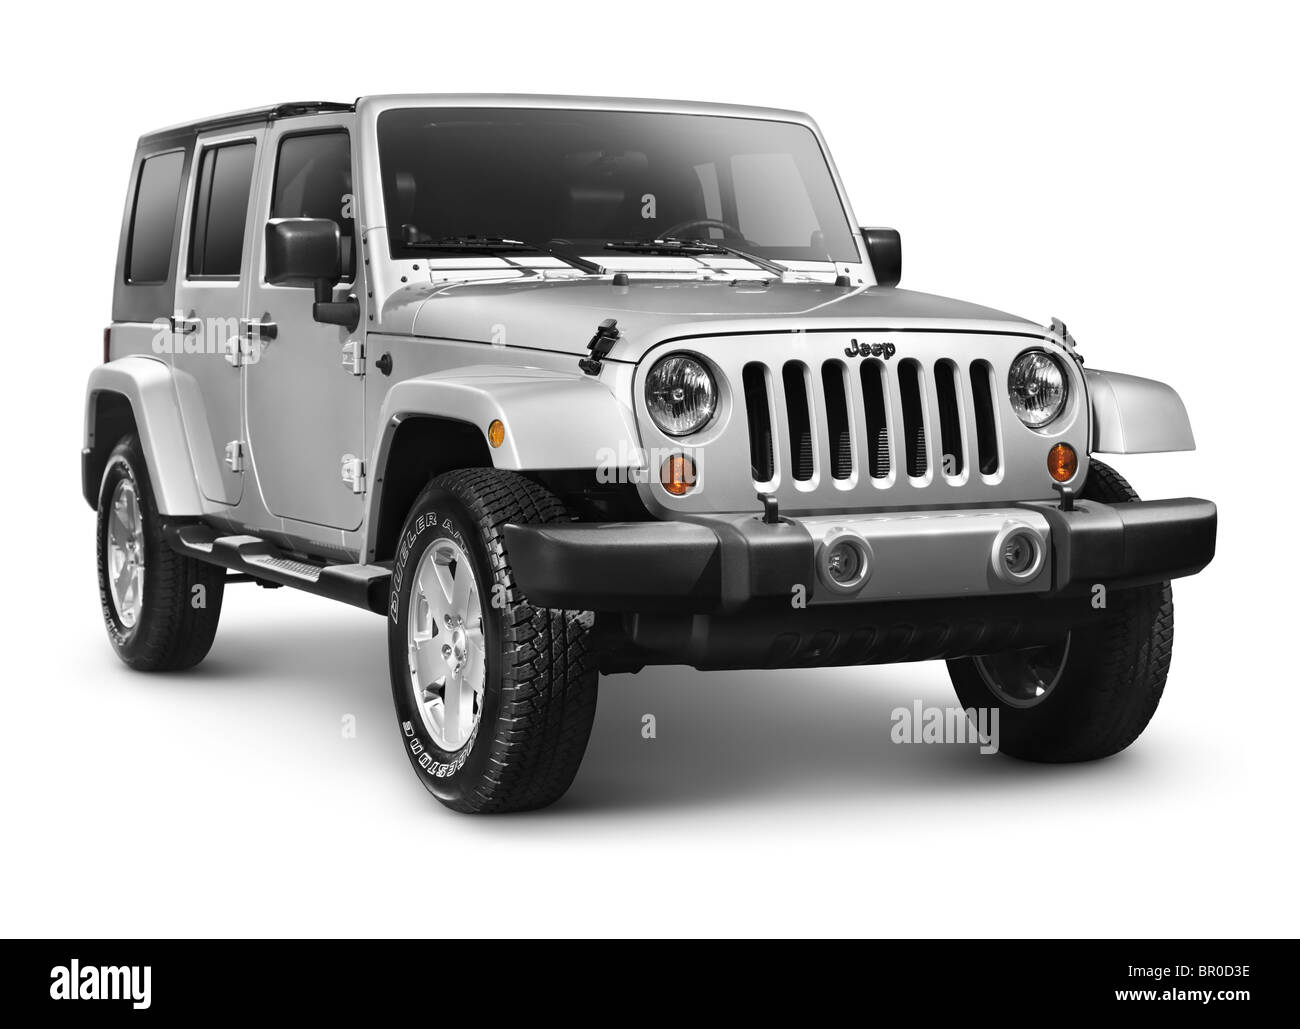 Silver 2011 Jeep Wrangler Unlimited Sahara 4x4 SUV isolated on white background with clipping path - Stock Image